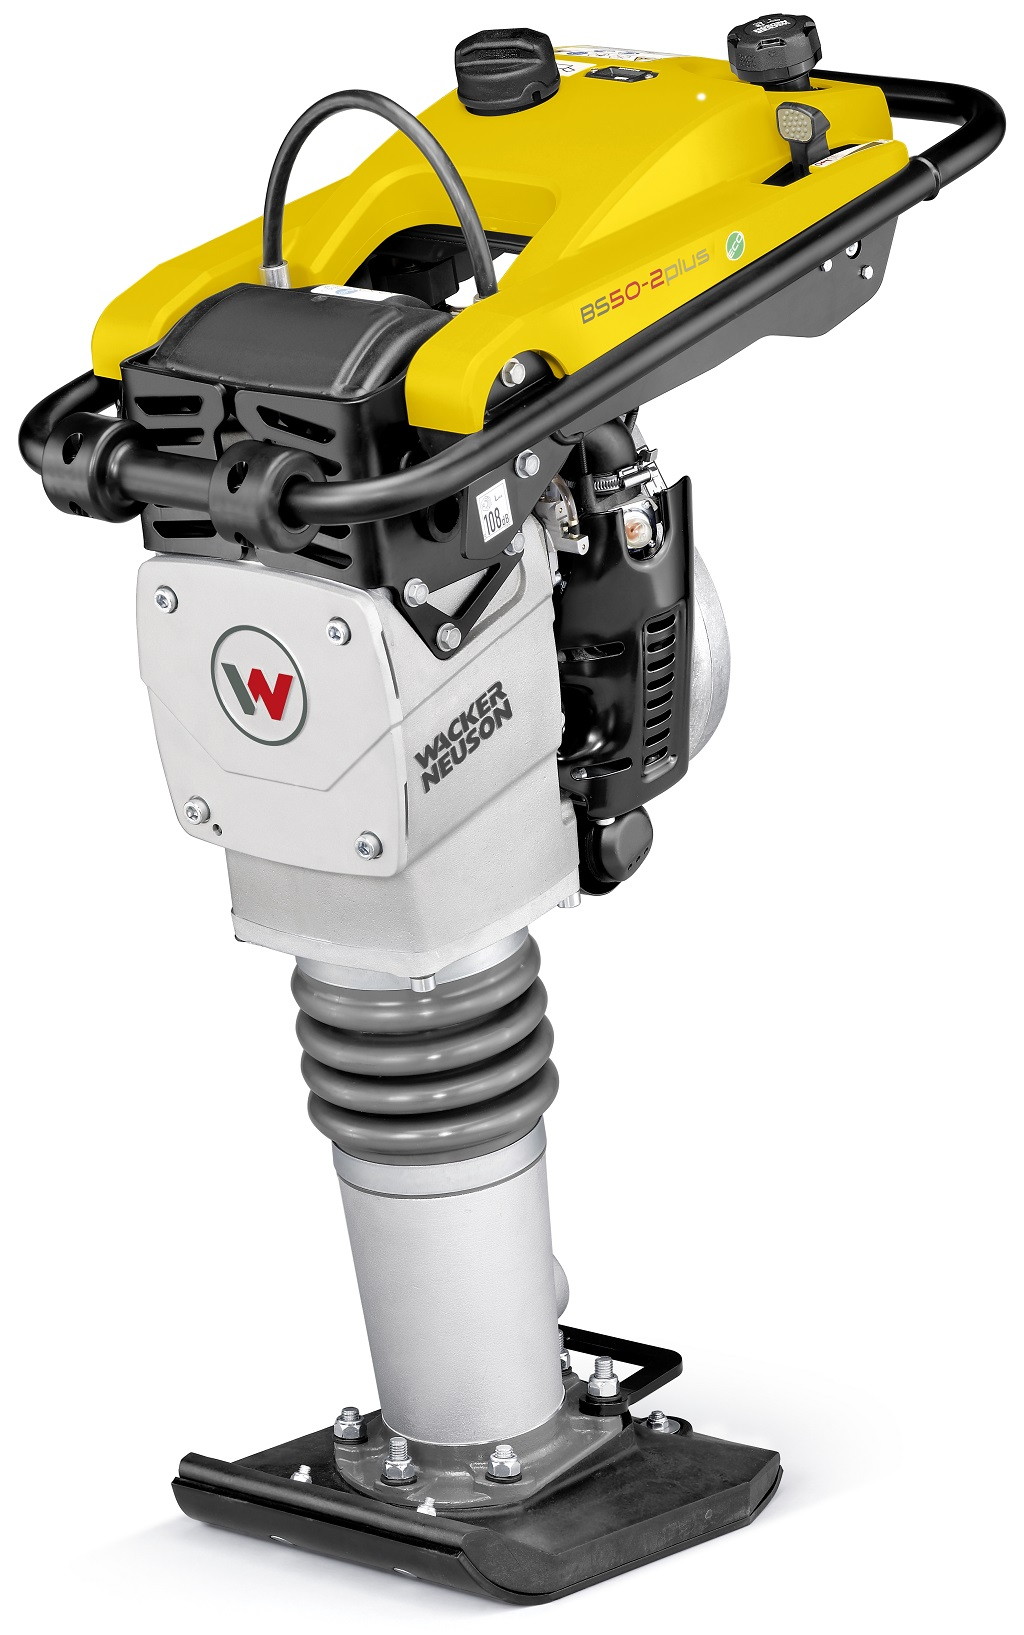 WACKER NEUSON BS 50-2plus